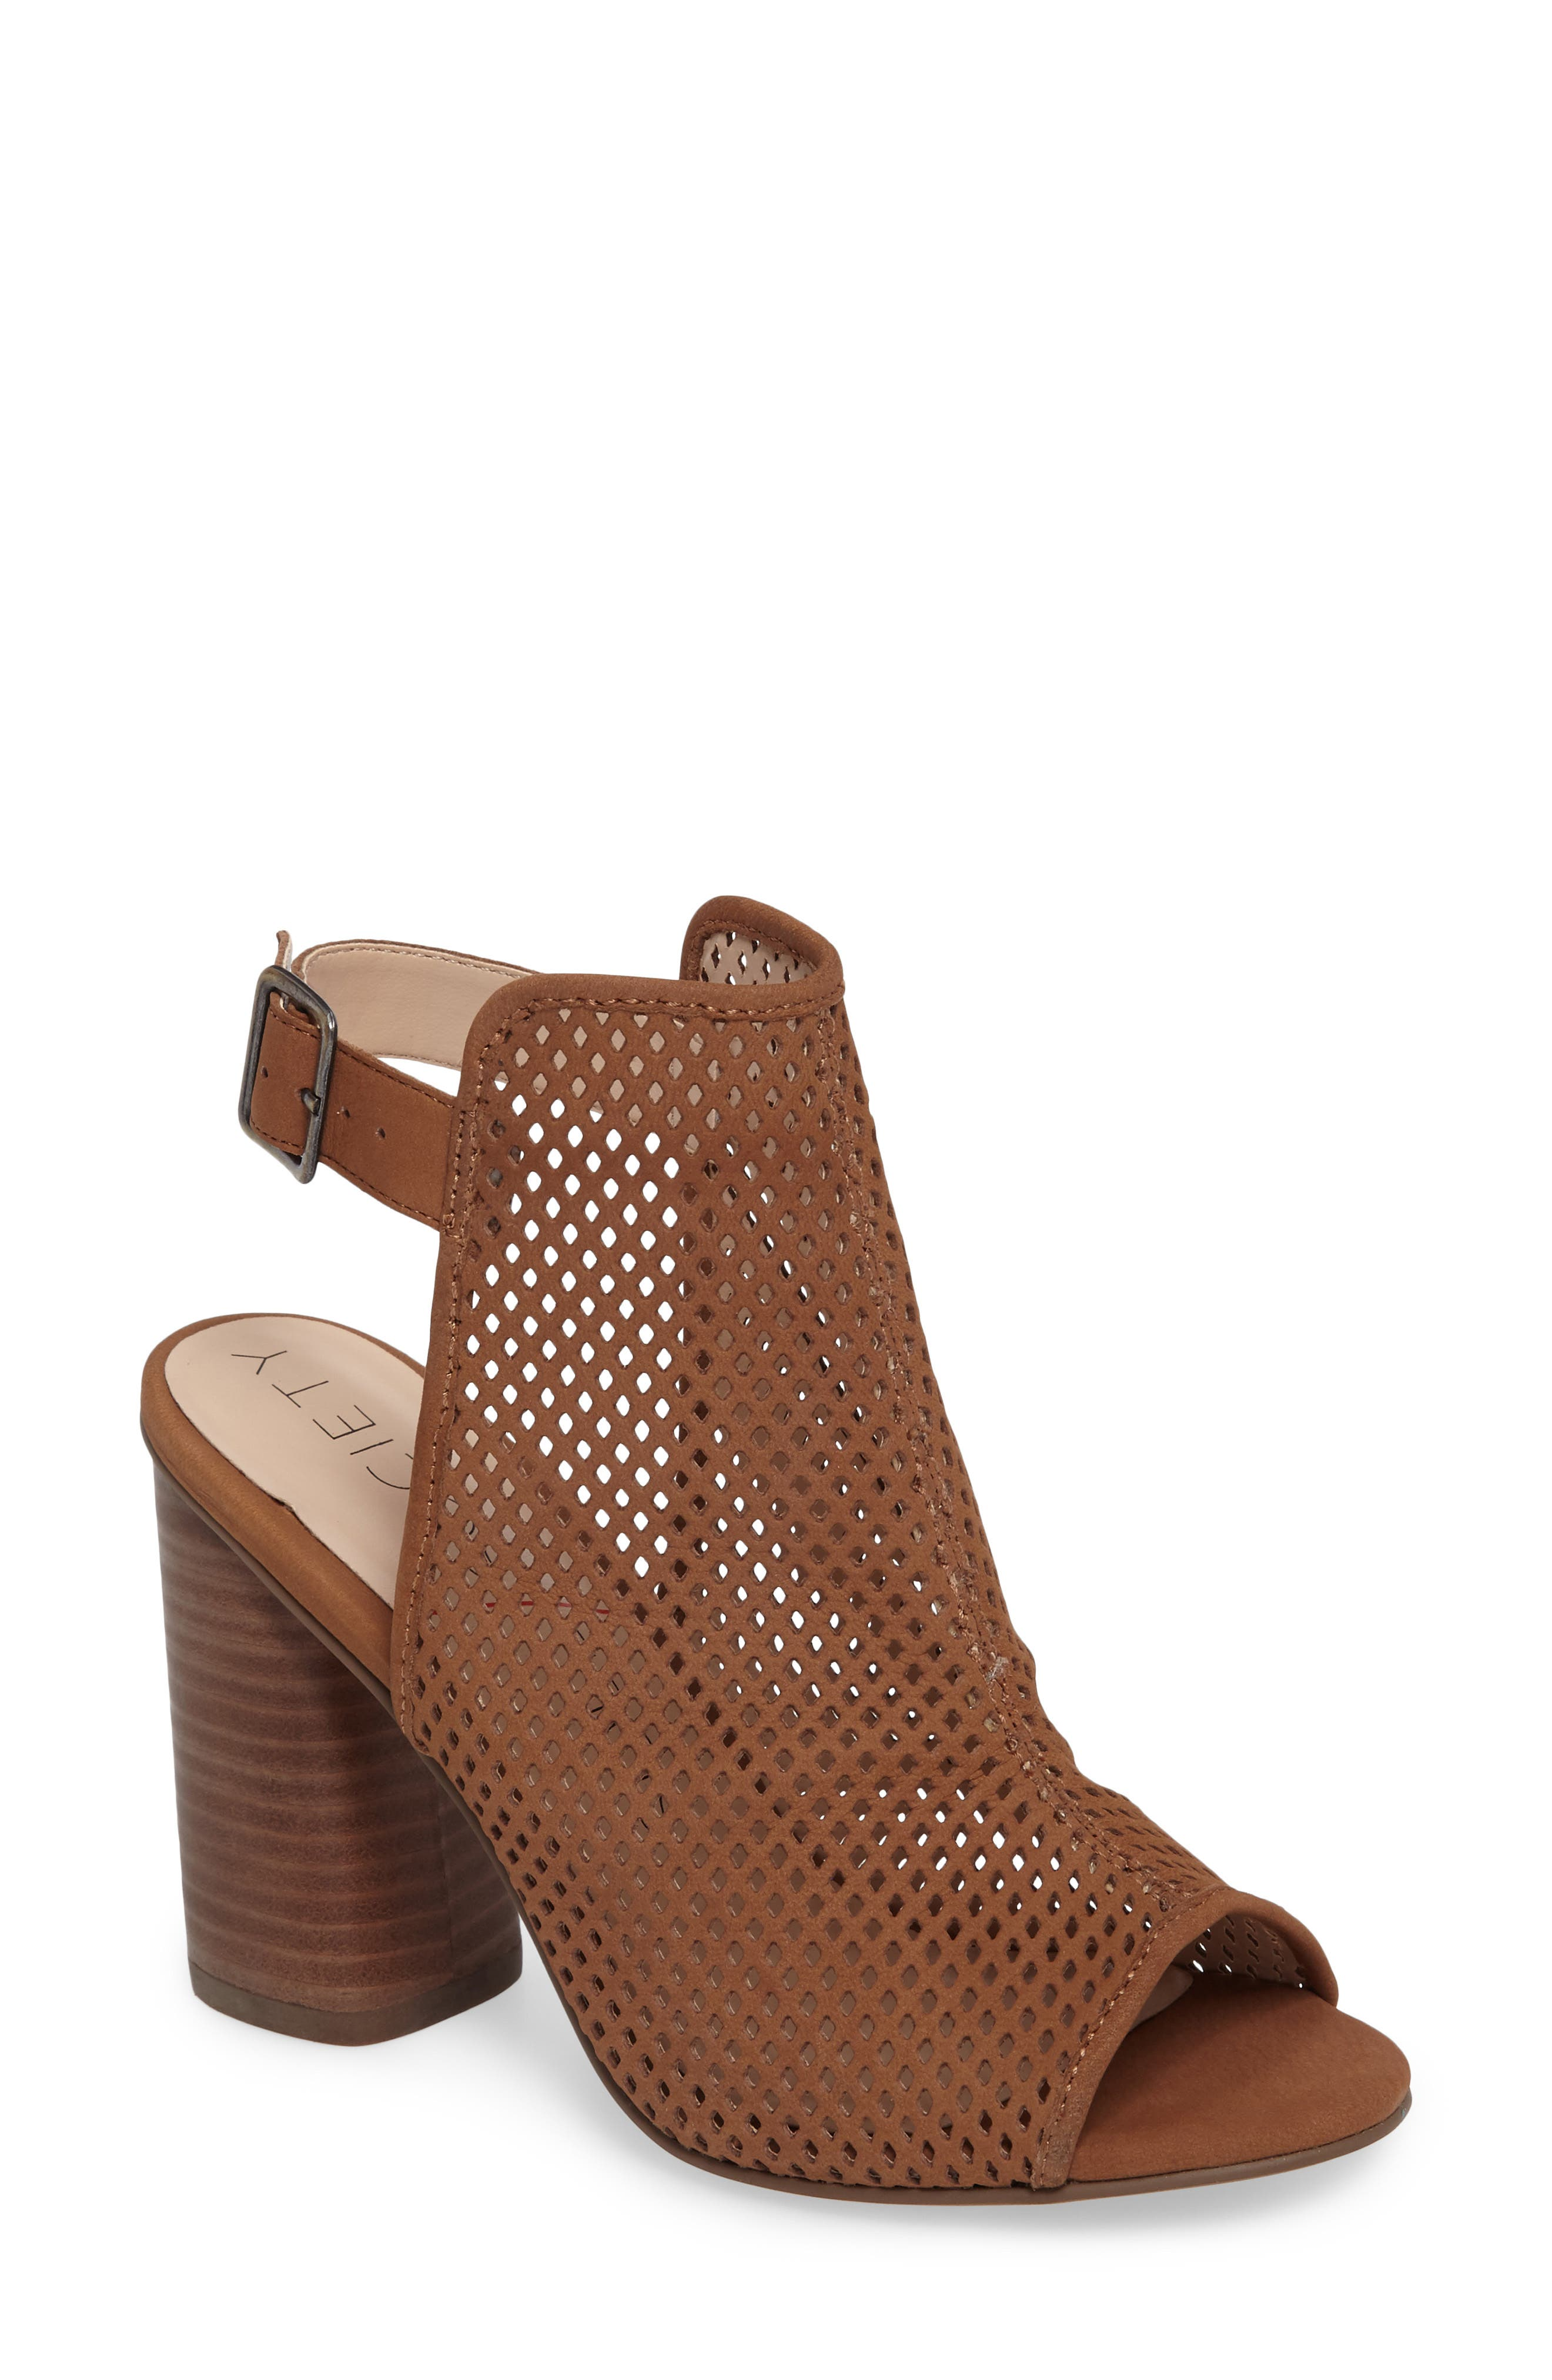 Alternate Image 1 Selected - Sole Society Bombay Perforated Sandal (Women)